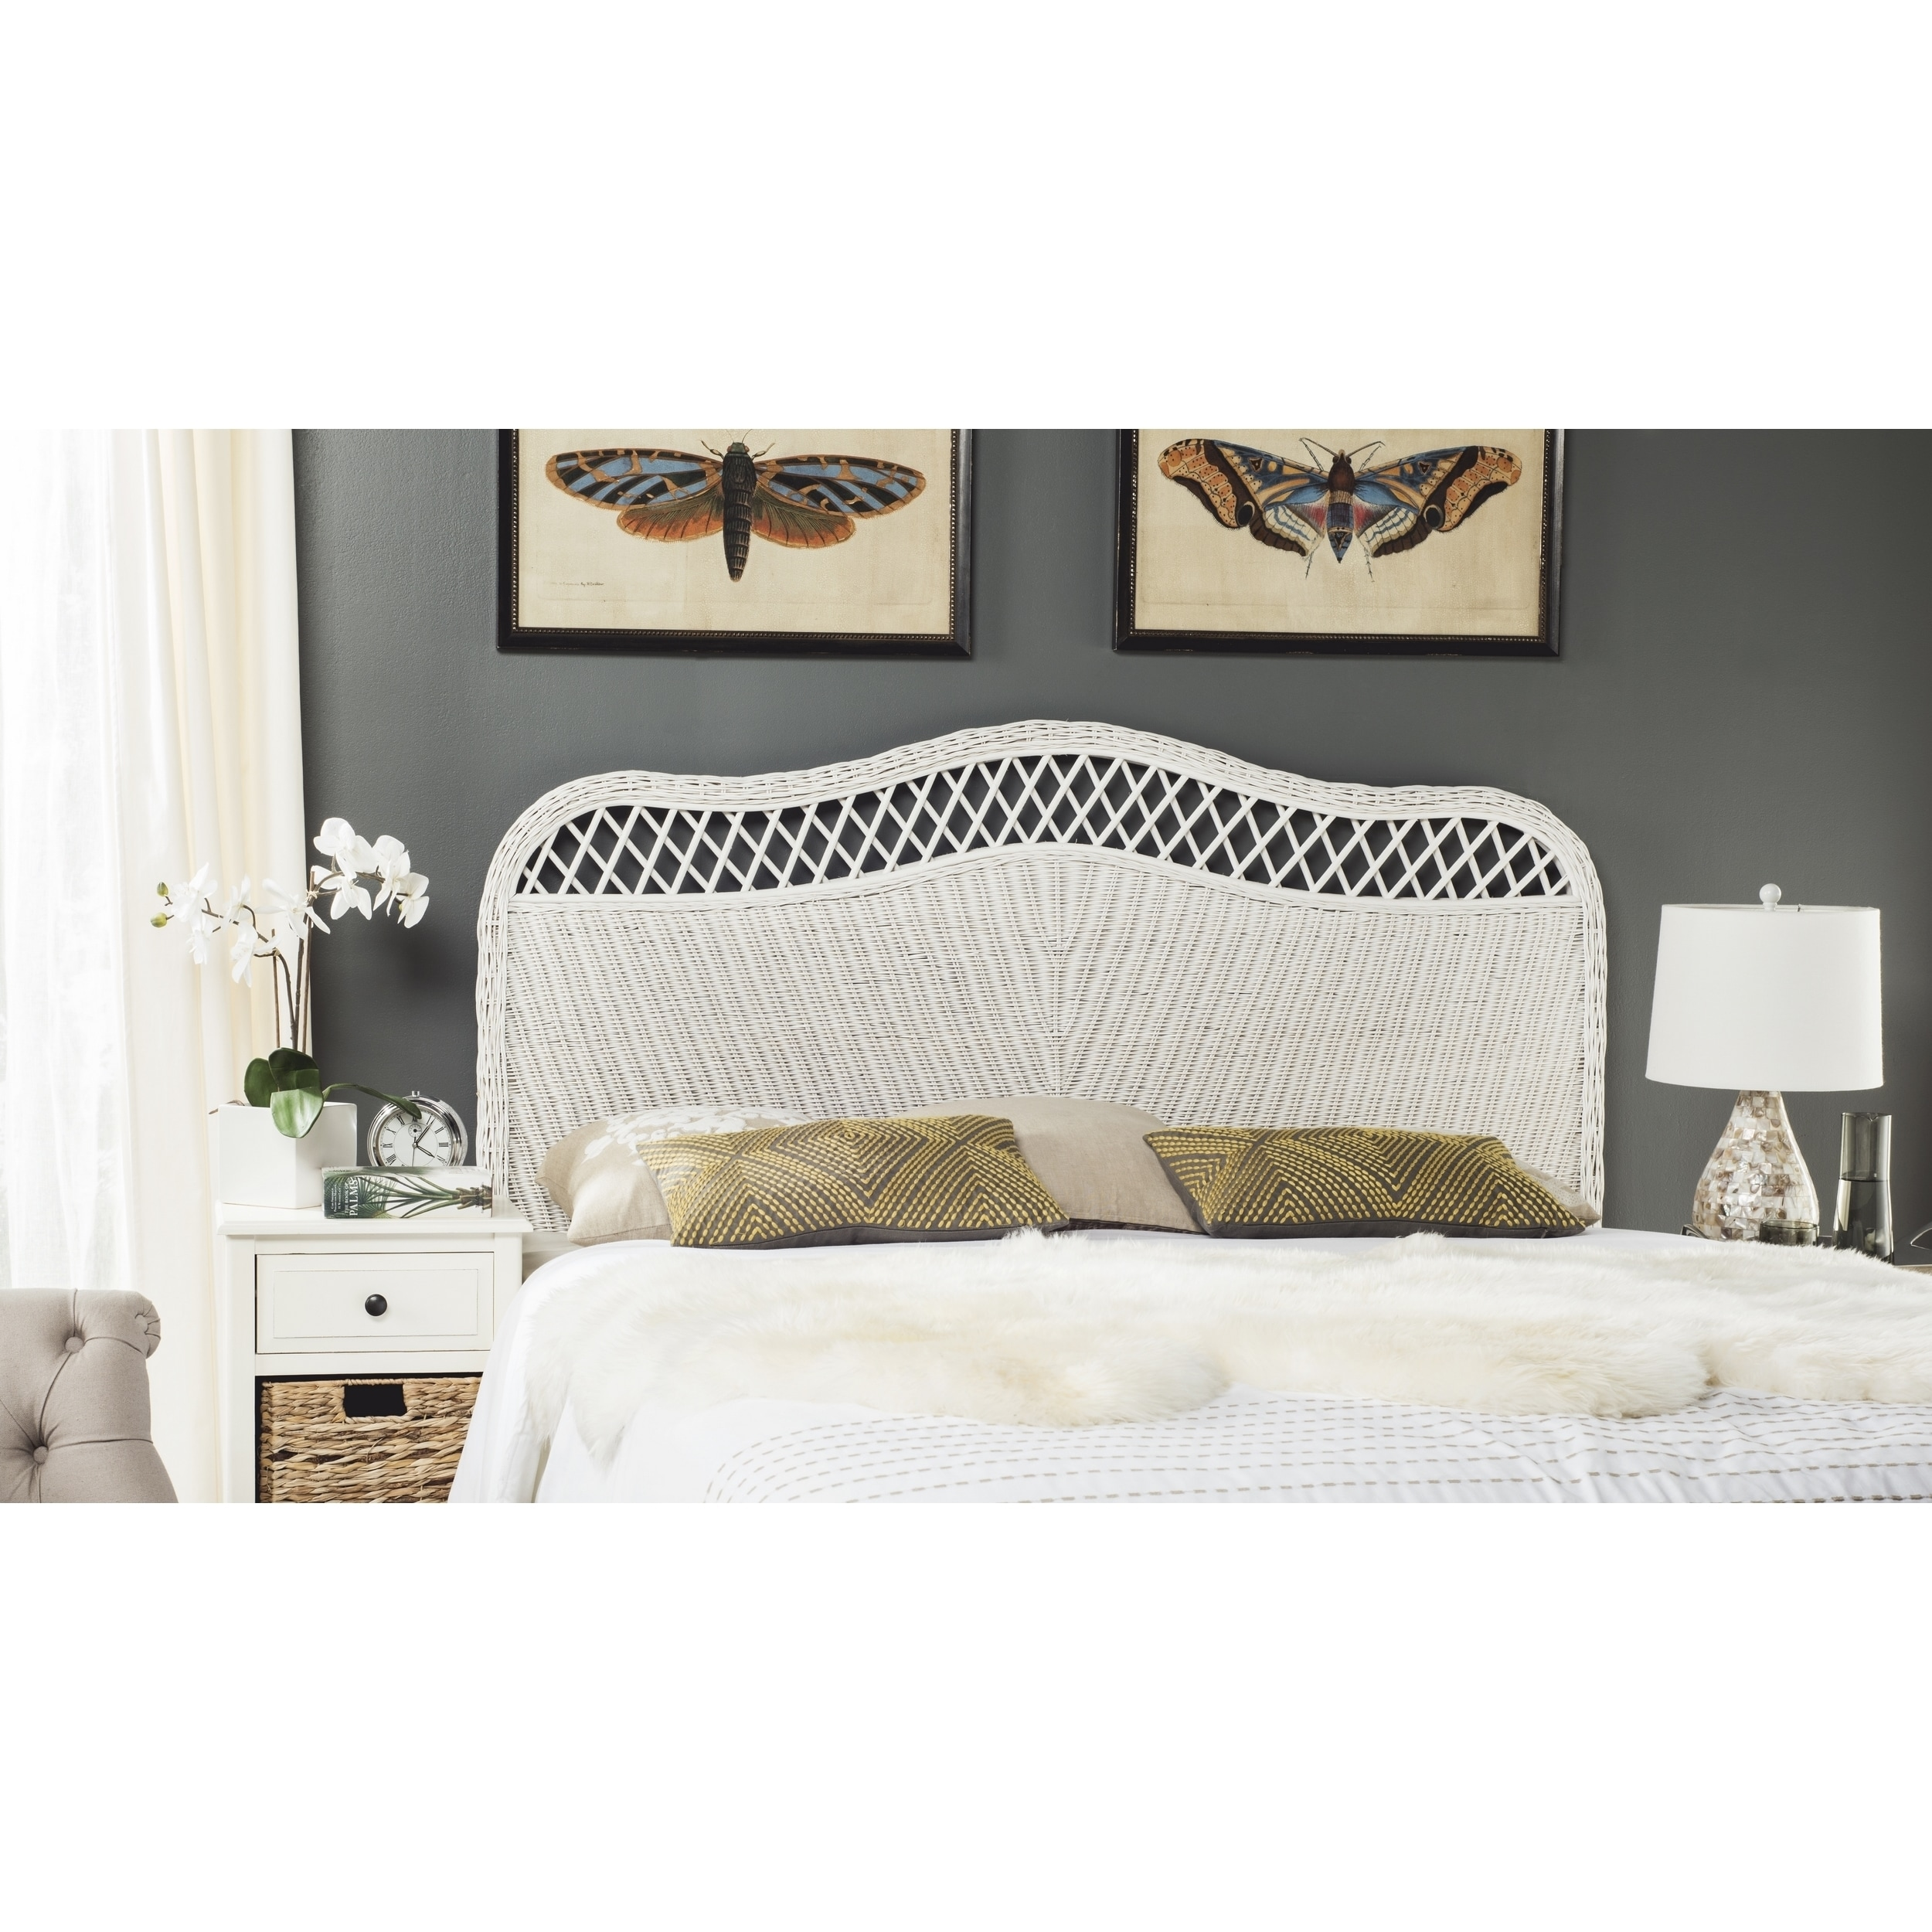 Safavieh Sephina White Rattan Headboard Queen On Sale Overstock 14428252